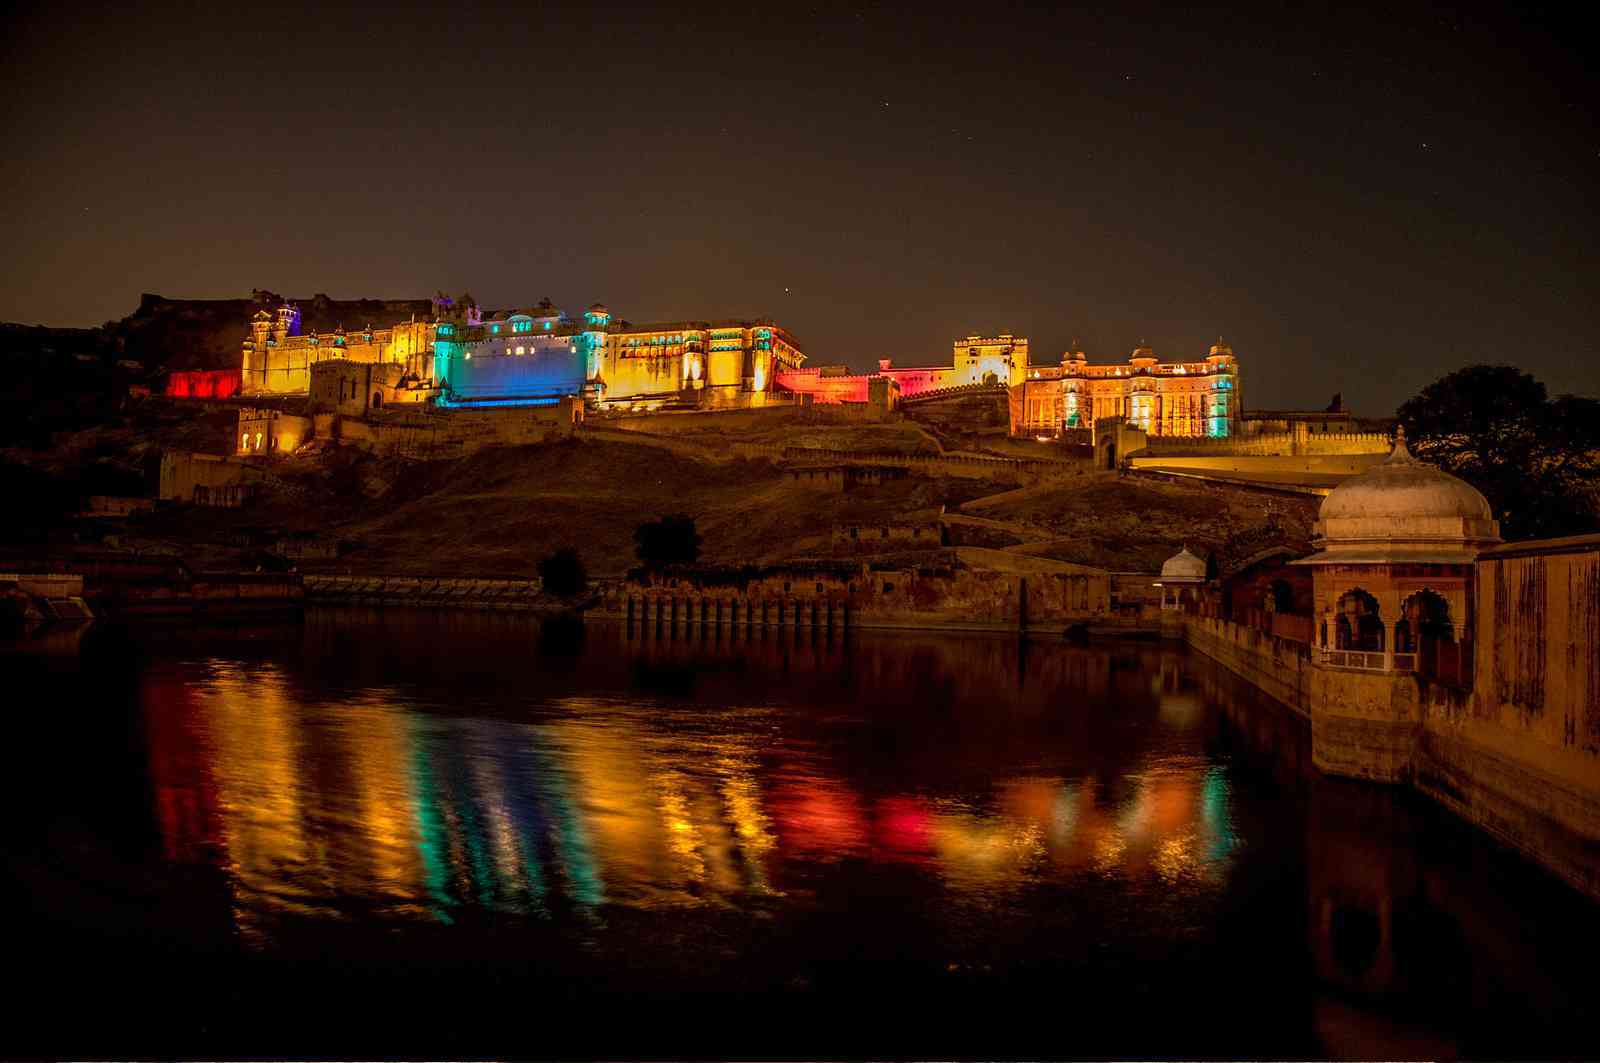 Night tourism in Rajasthan